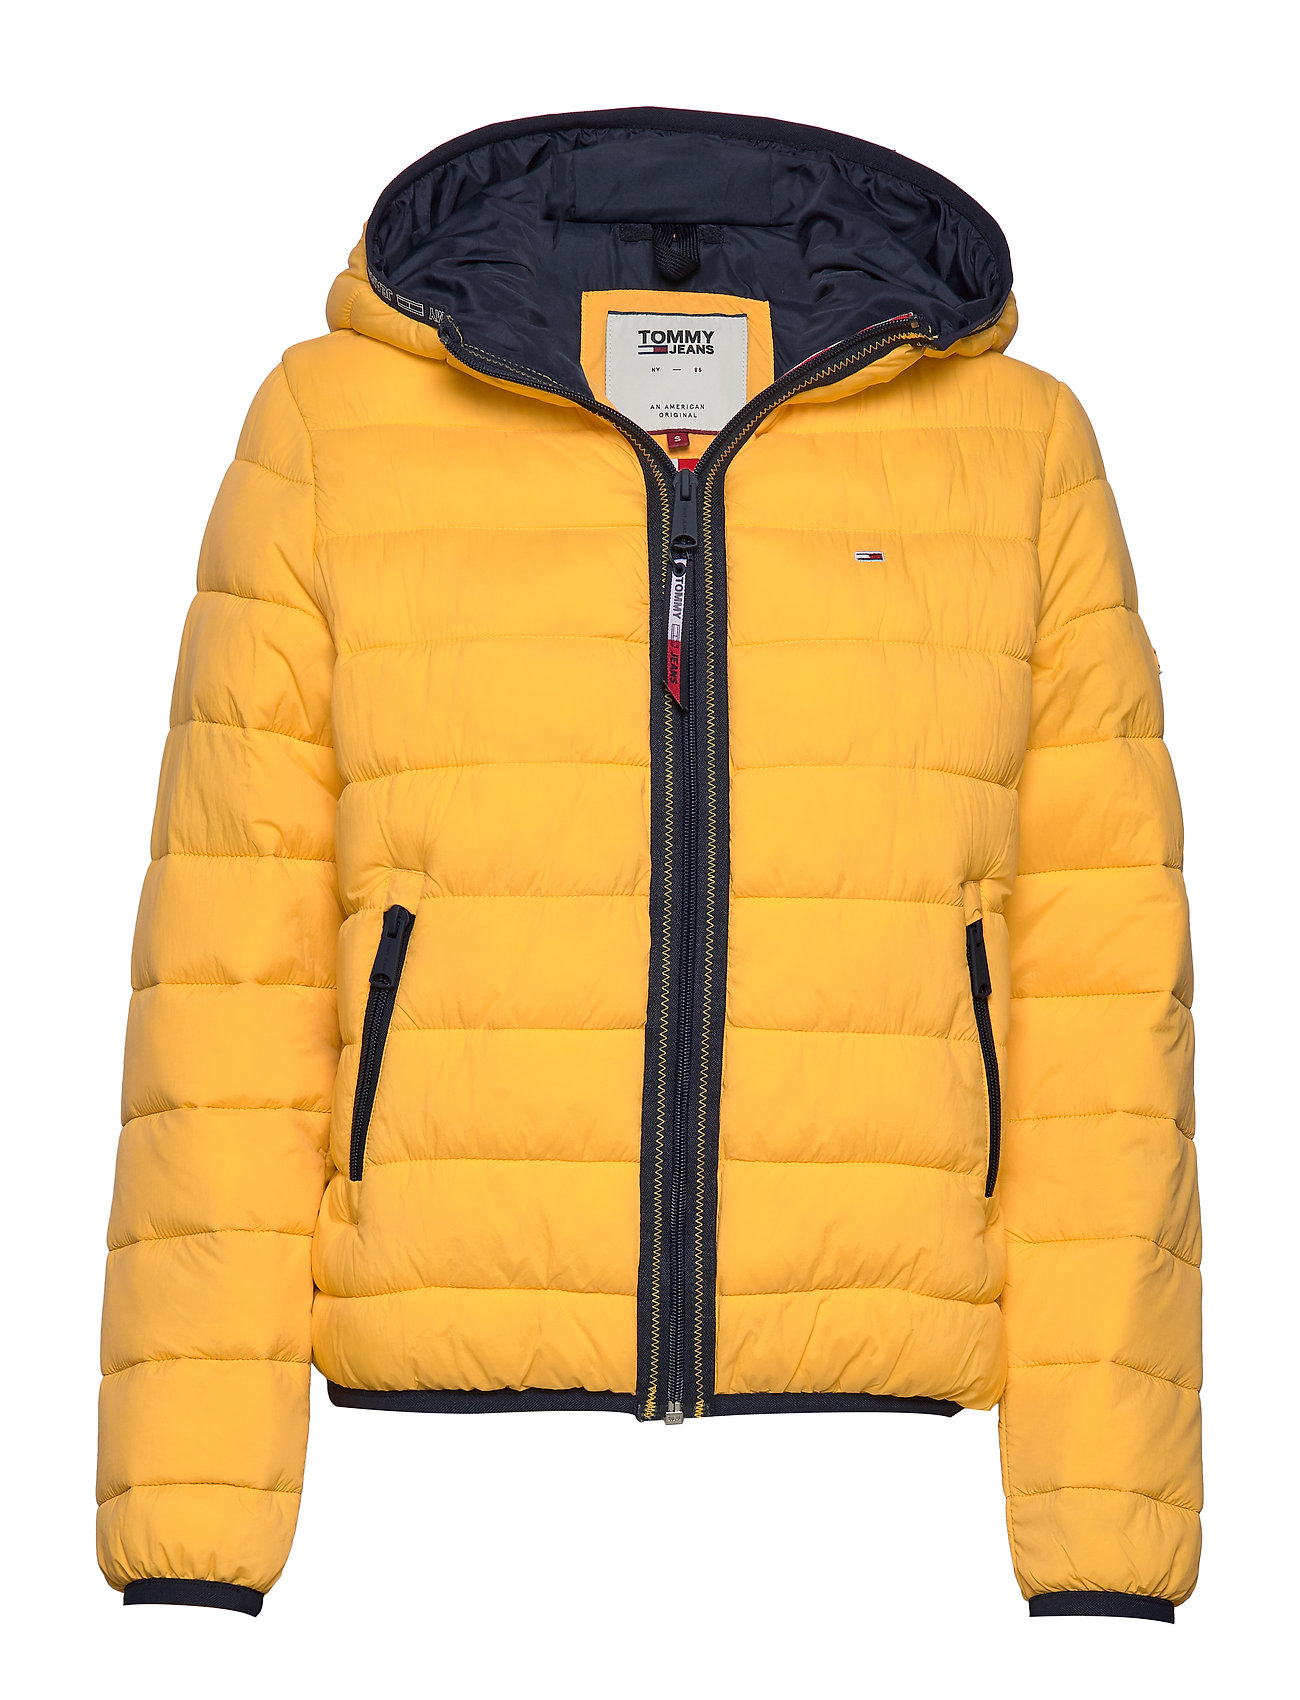 Tommy Jeans TJW QUILTED TAPE DETAIL JACKET - SPECTRA YELLOW